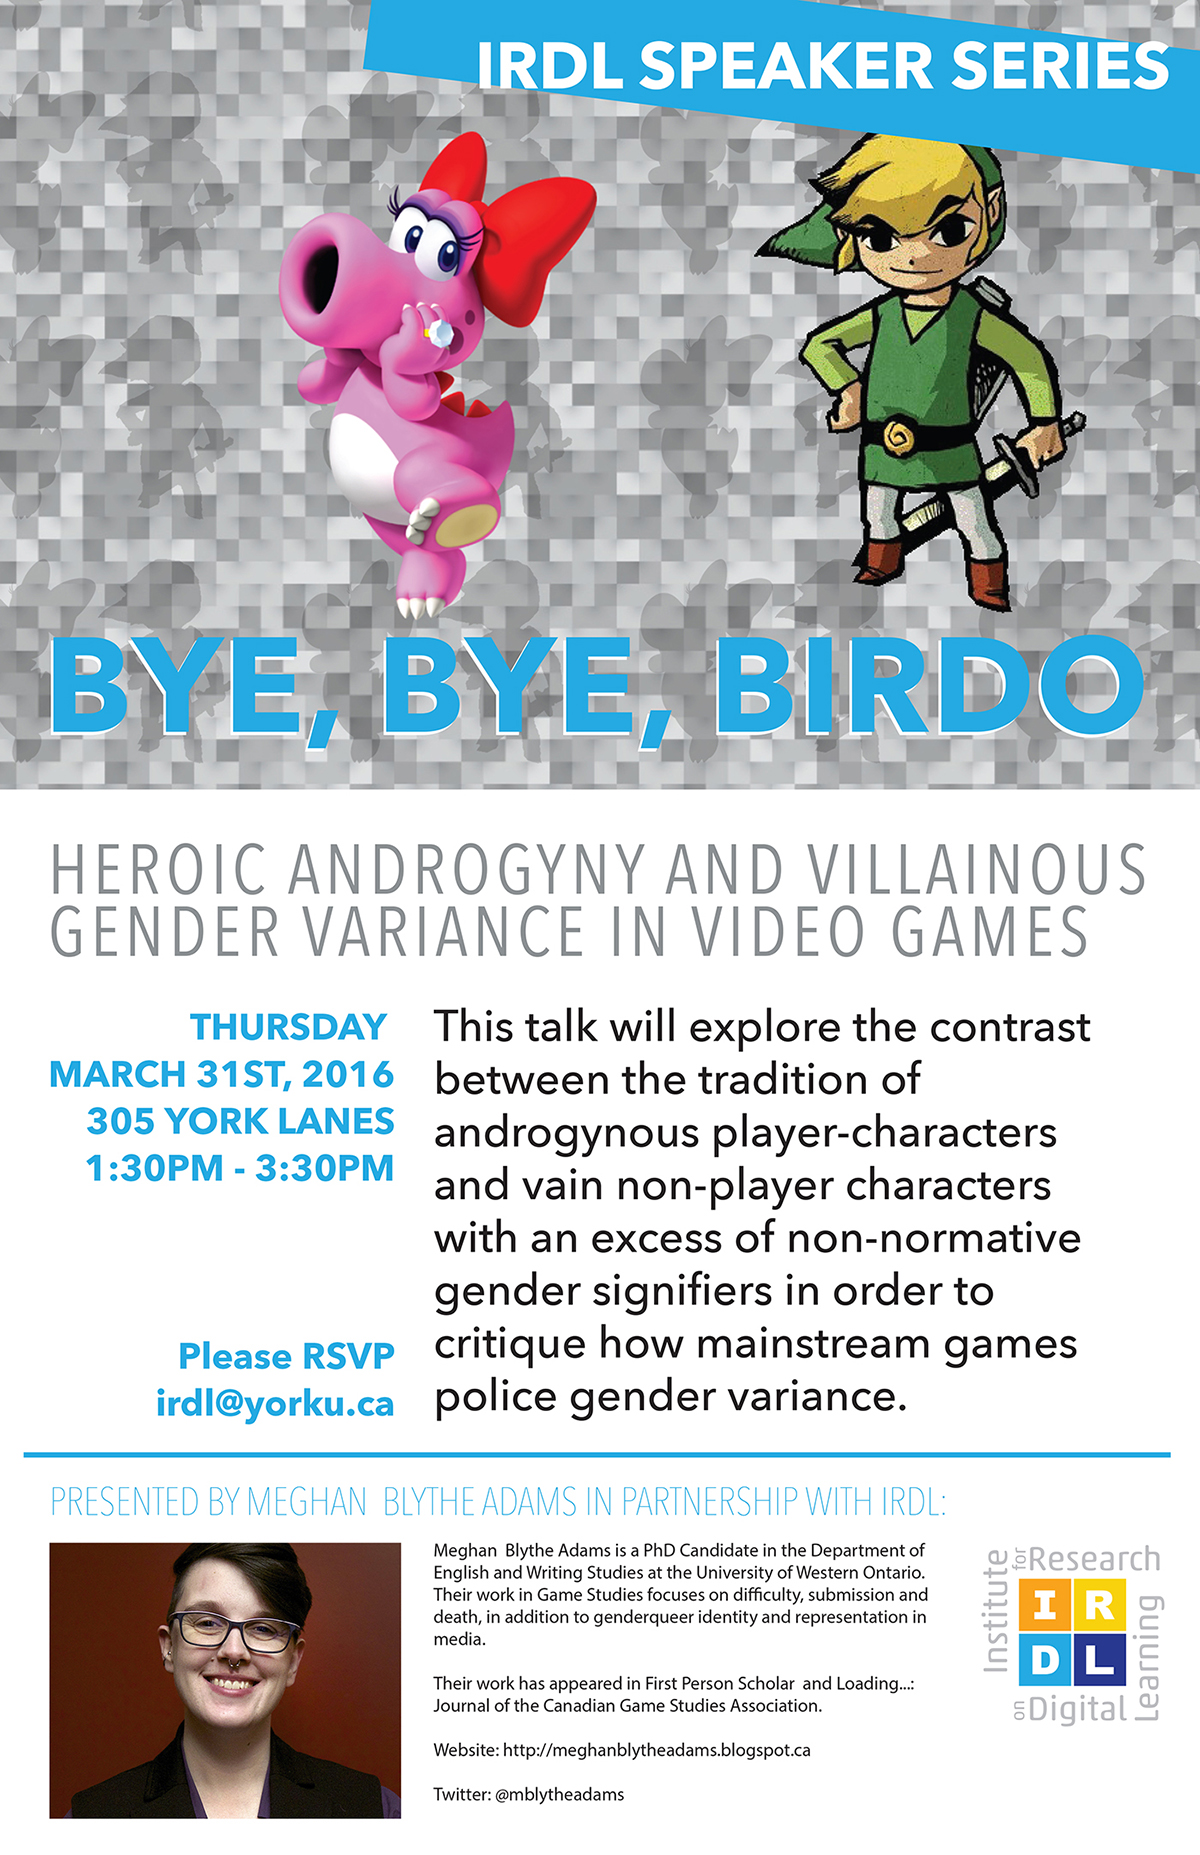 Bye, Bye, Birdo: Heroic Androgyny and Villainous Gender Variance in Video Games